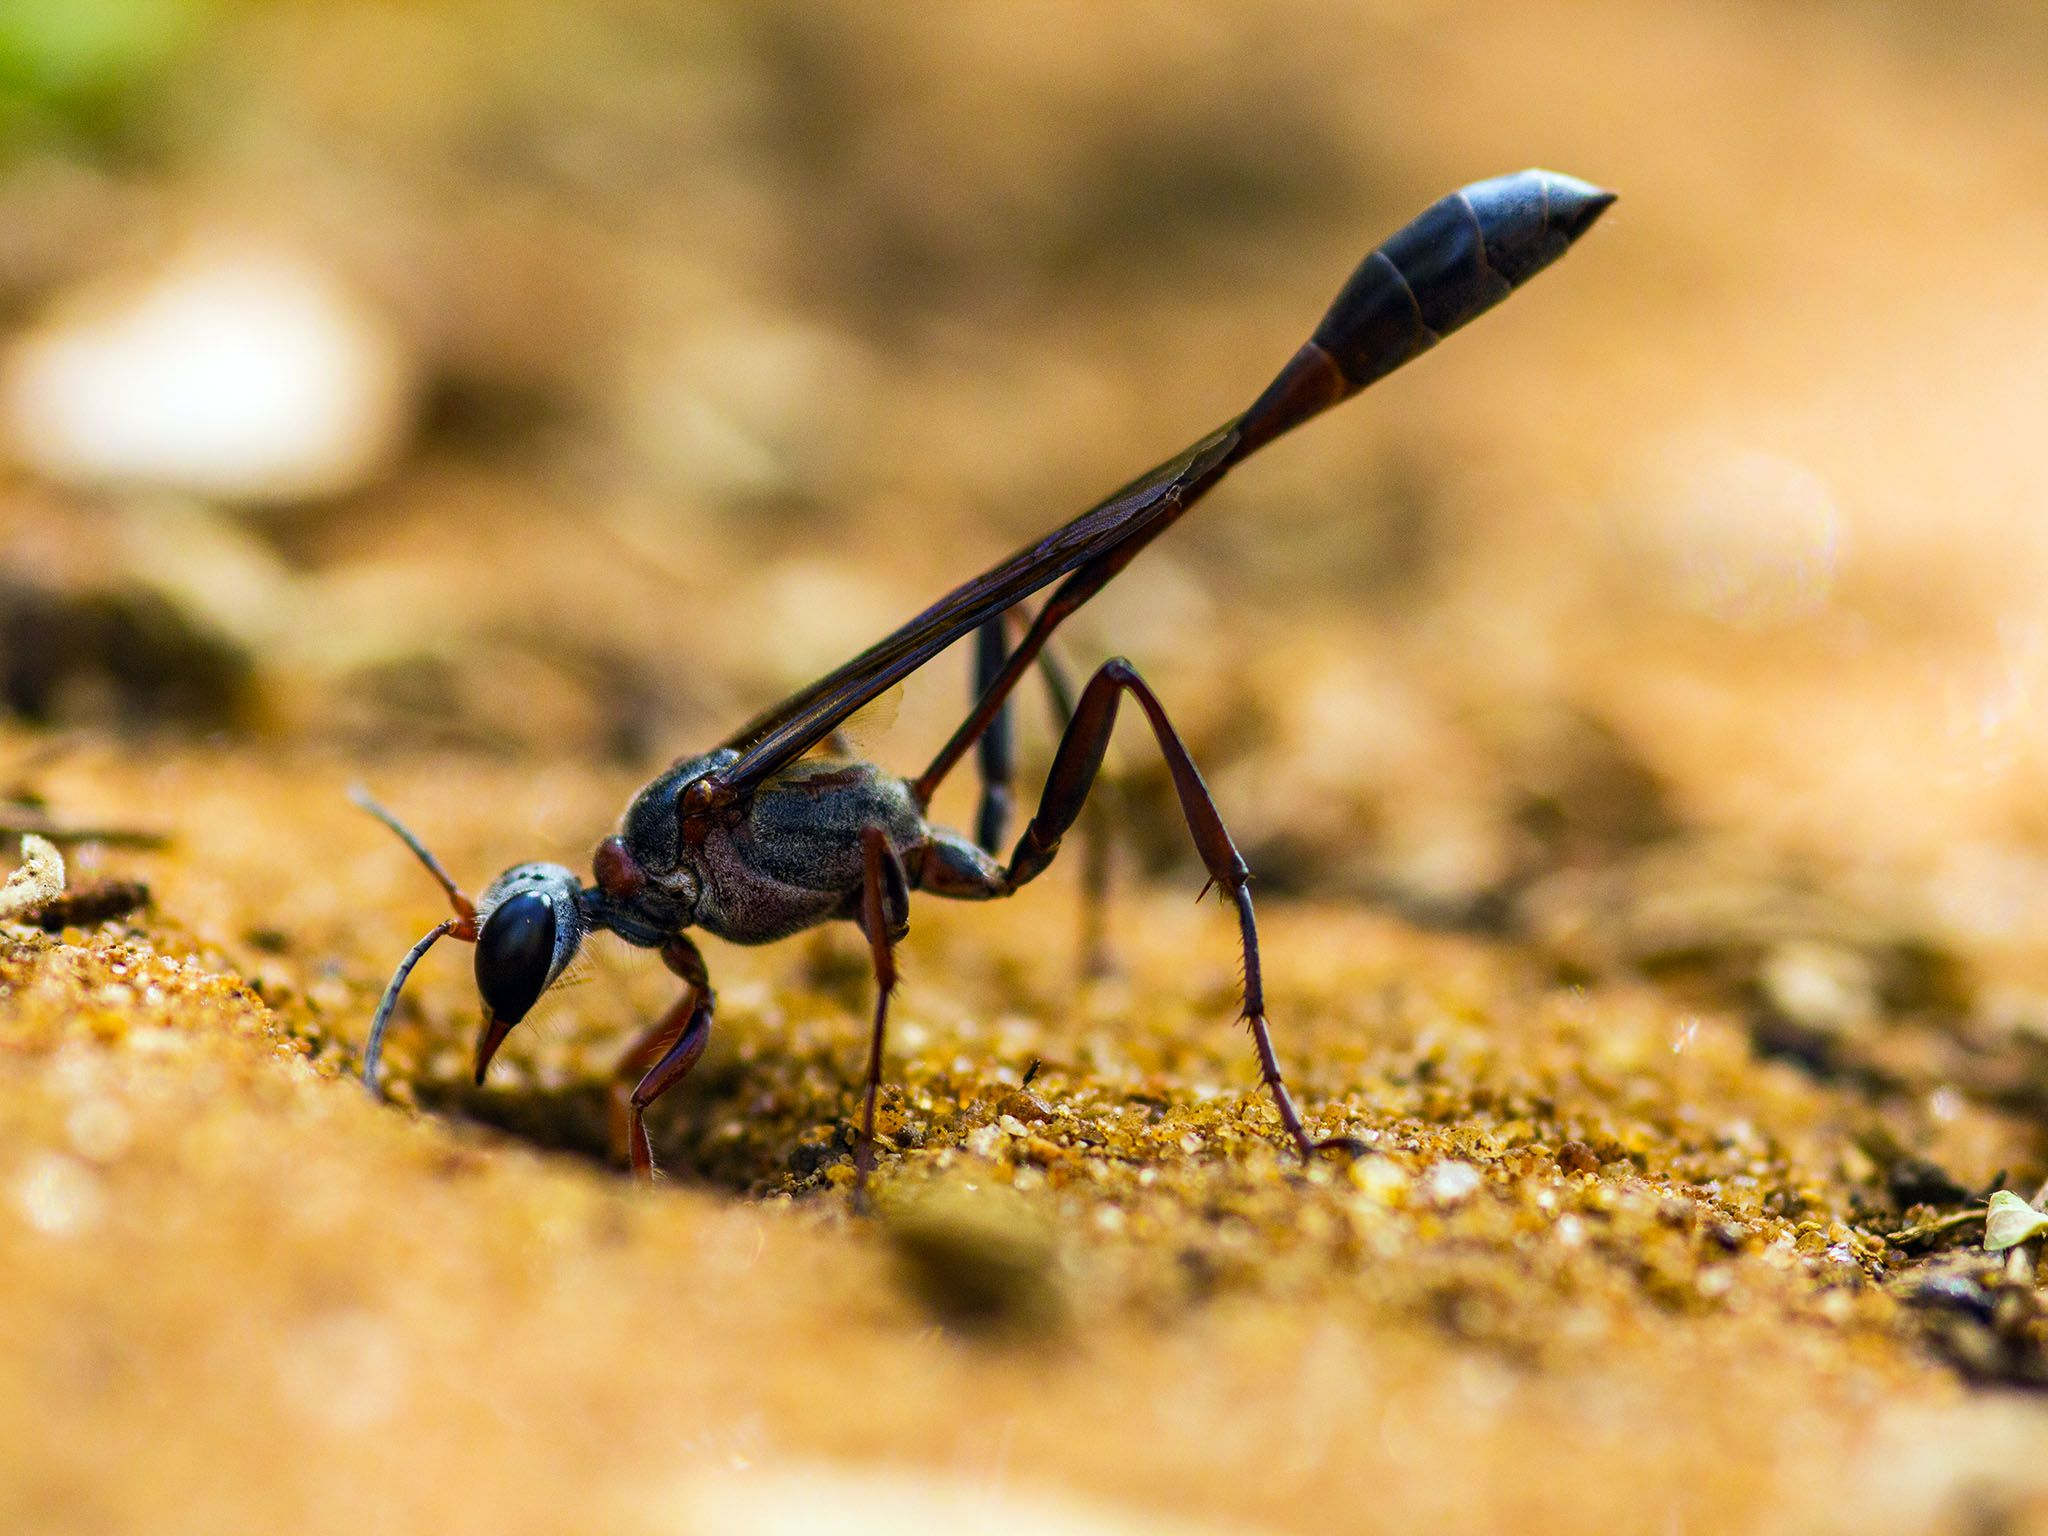 Durban, South Africa: A thread-waisted parasitic wasp standing on soil with head positioned... [Photo of the day - May 2016]